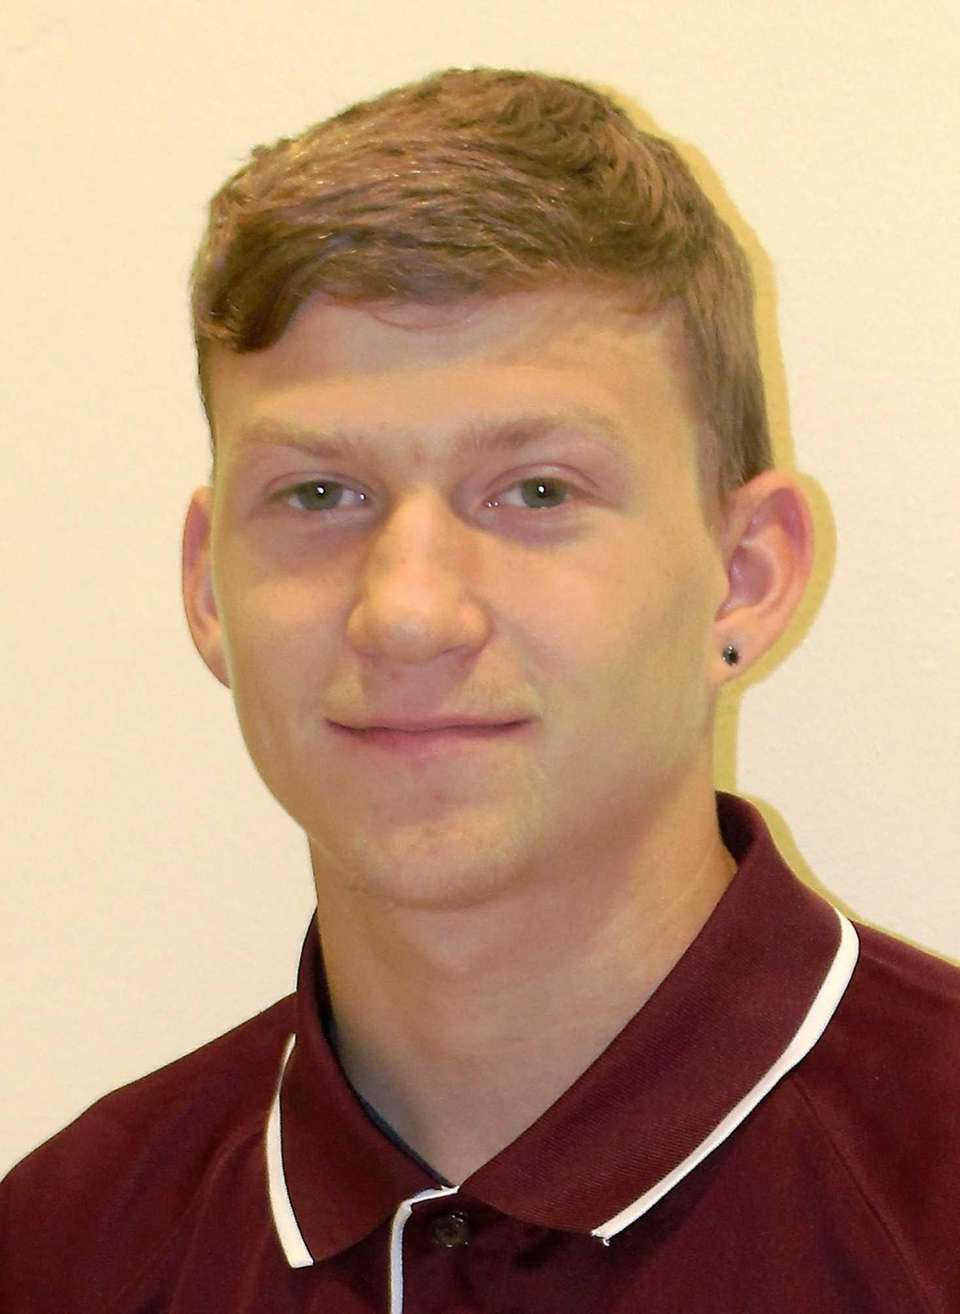 Guerin bowled a perfect game on Dec. 8